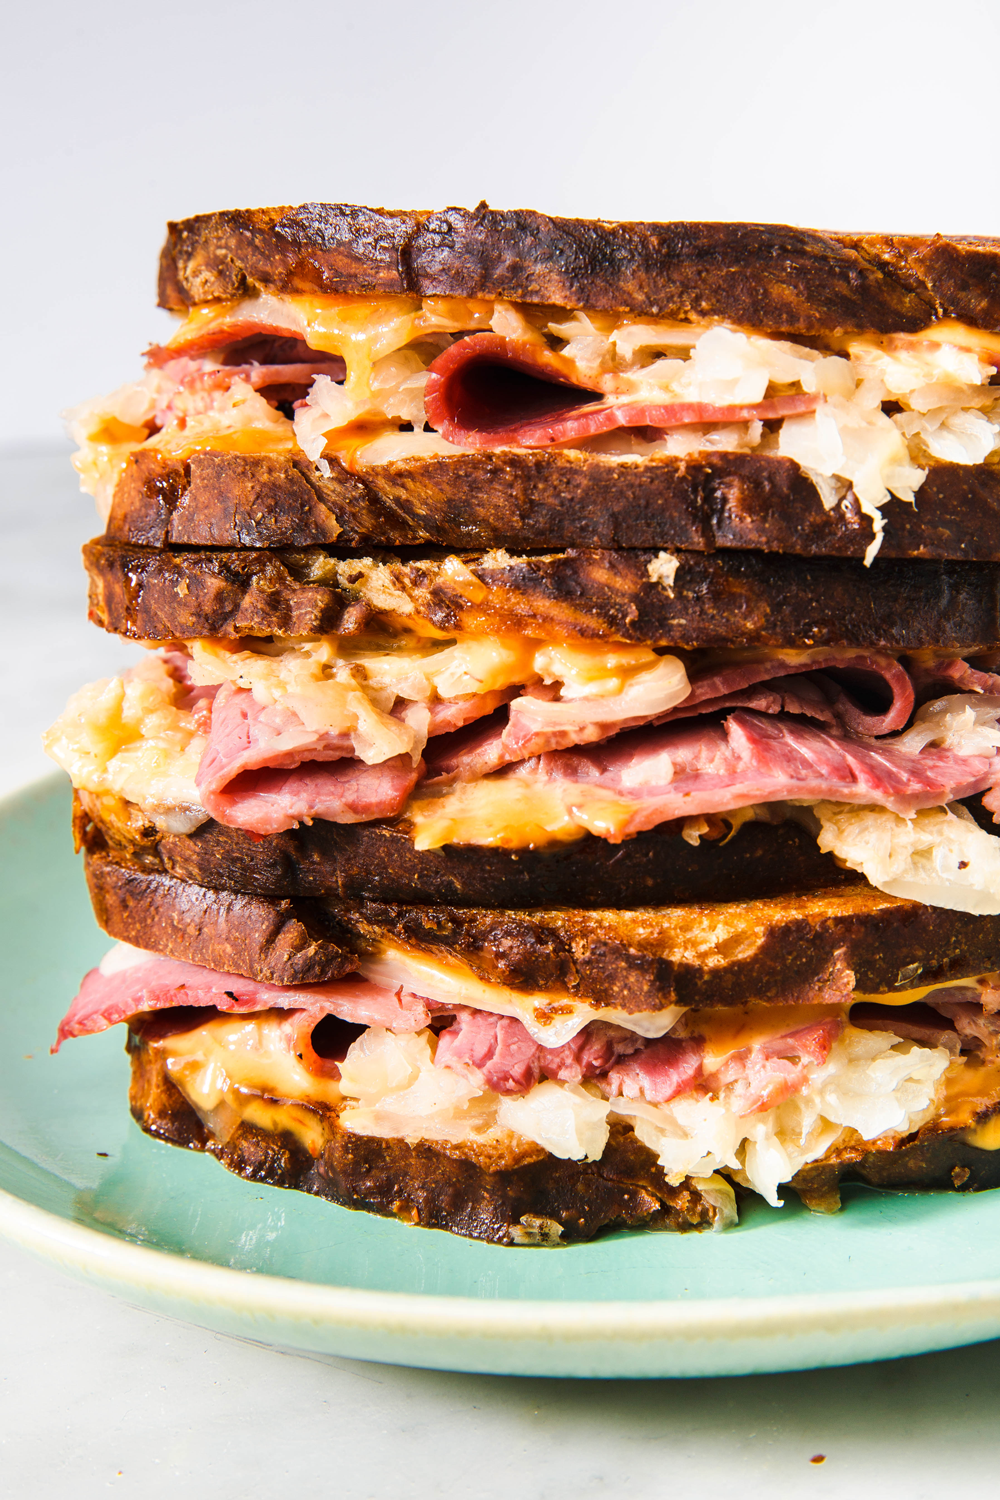 10 Hearty Dinnertime Sandwiches recommend